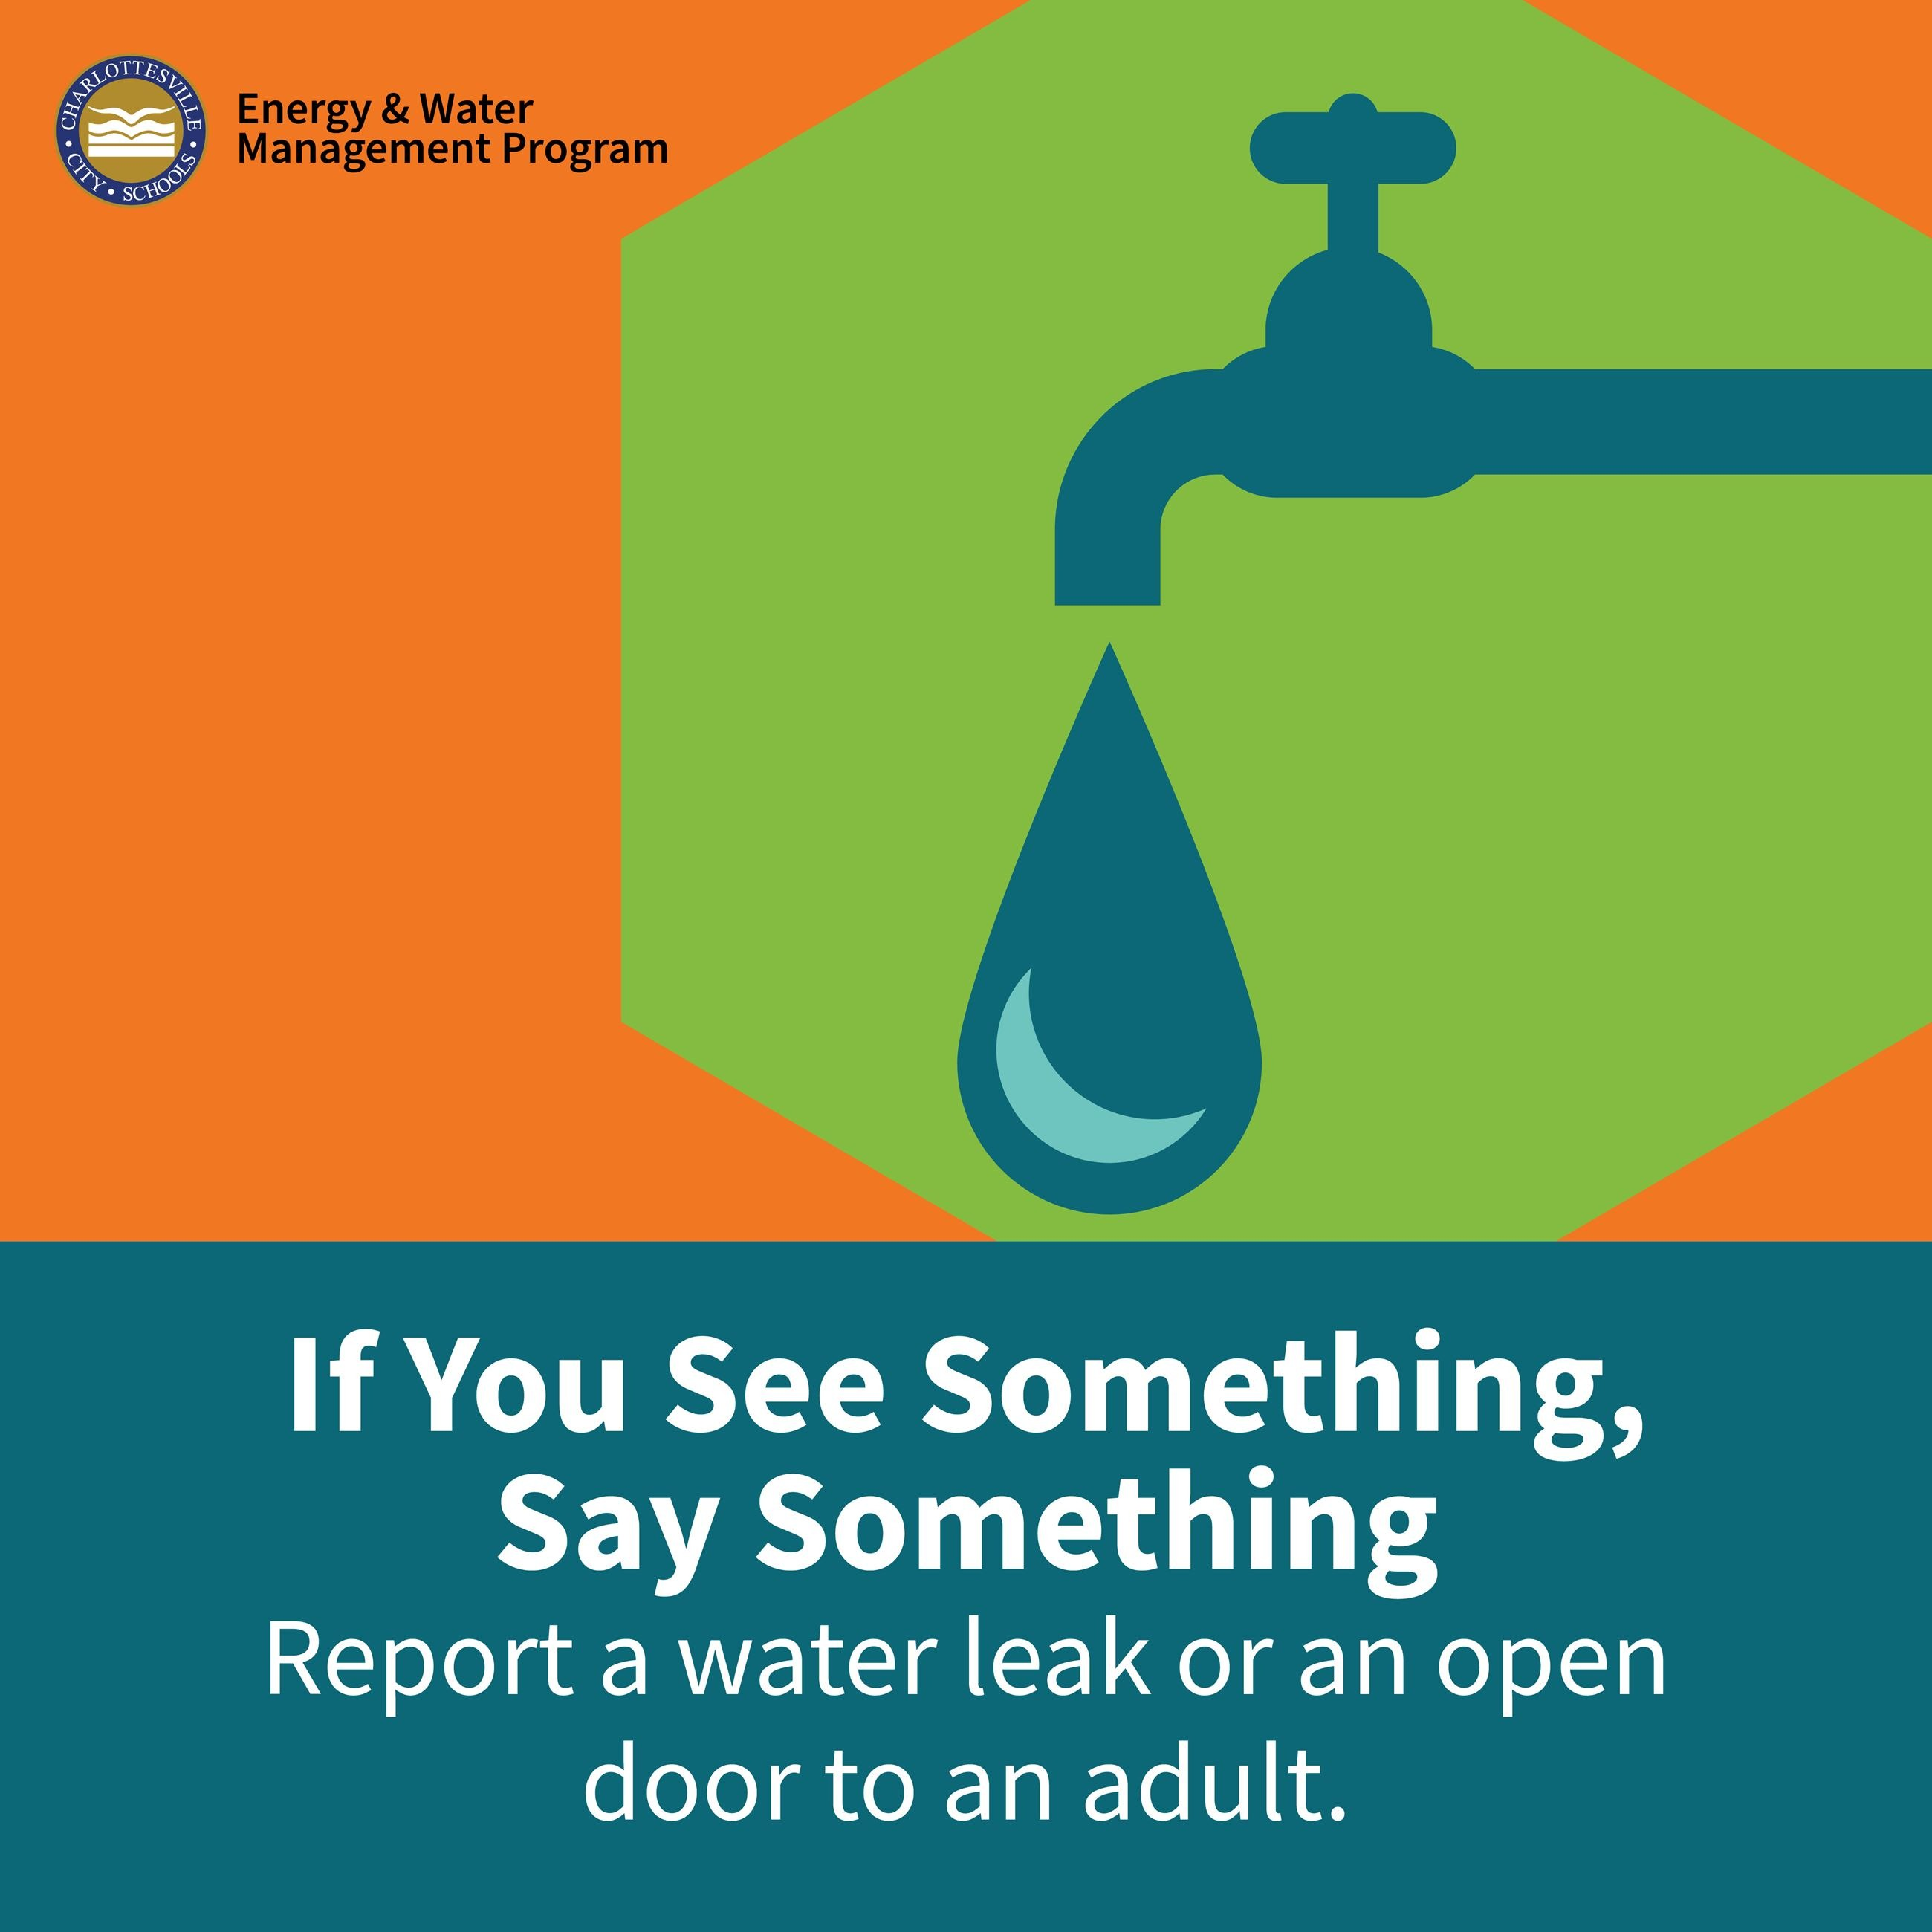 If You See Something, Say Something: report a water leak or an open door to an adult.